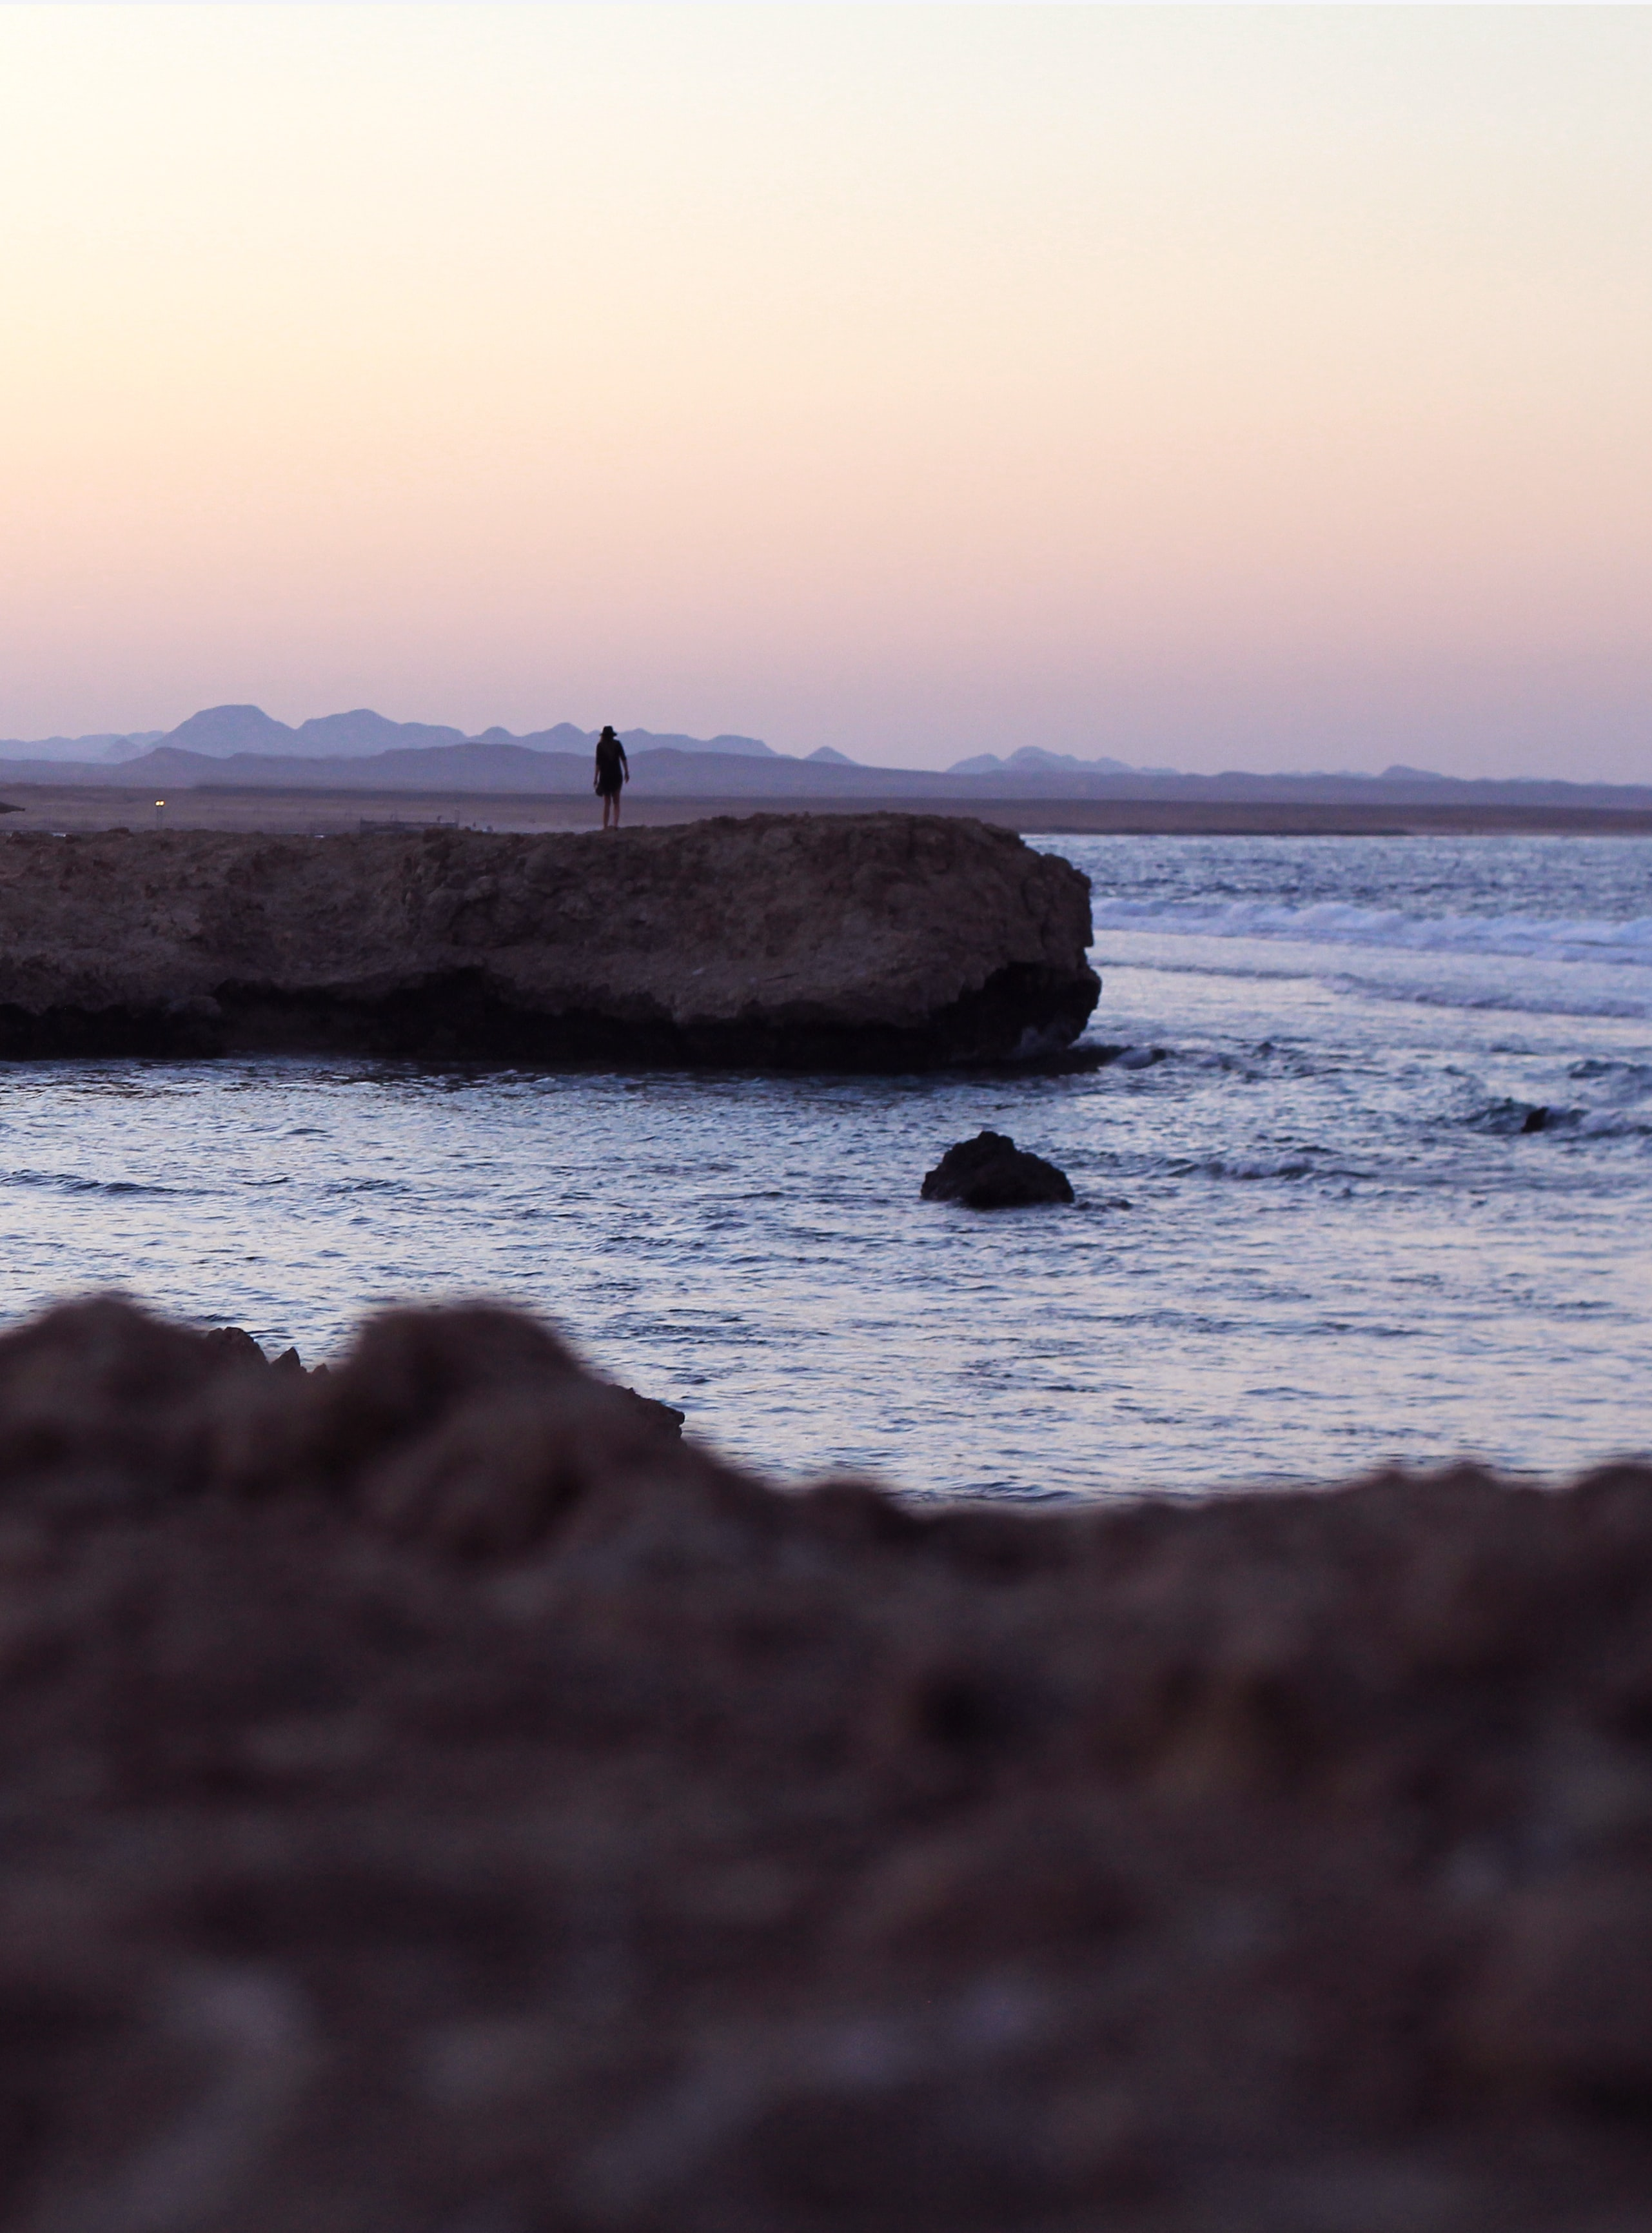 person standing on cliff near body of water